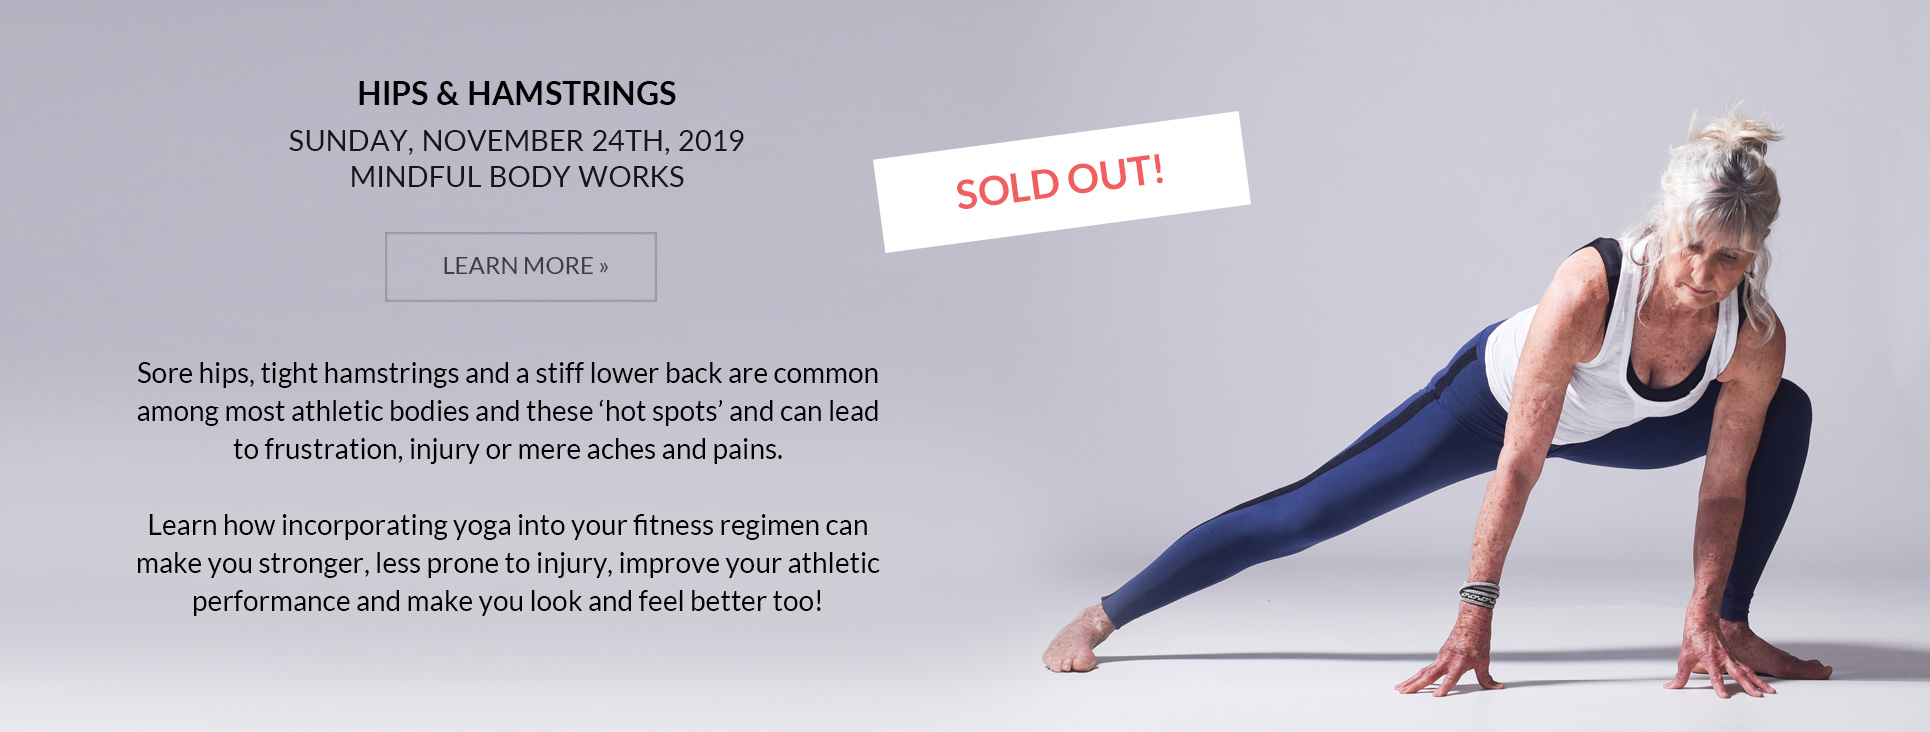 Hips & Hamstrings - sold out!